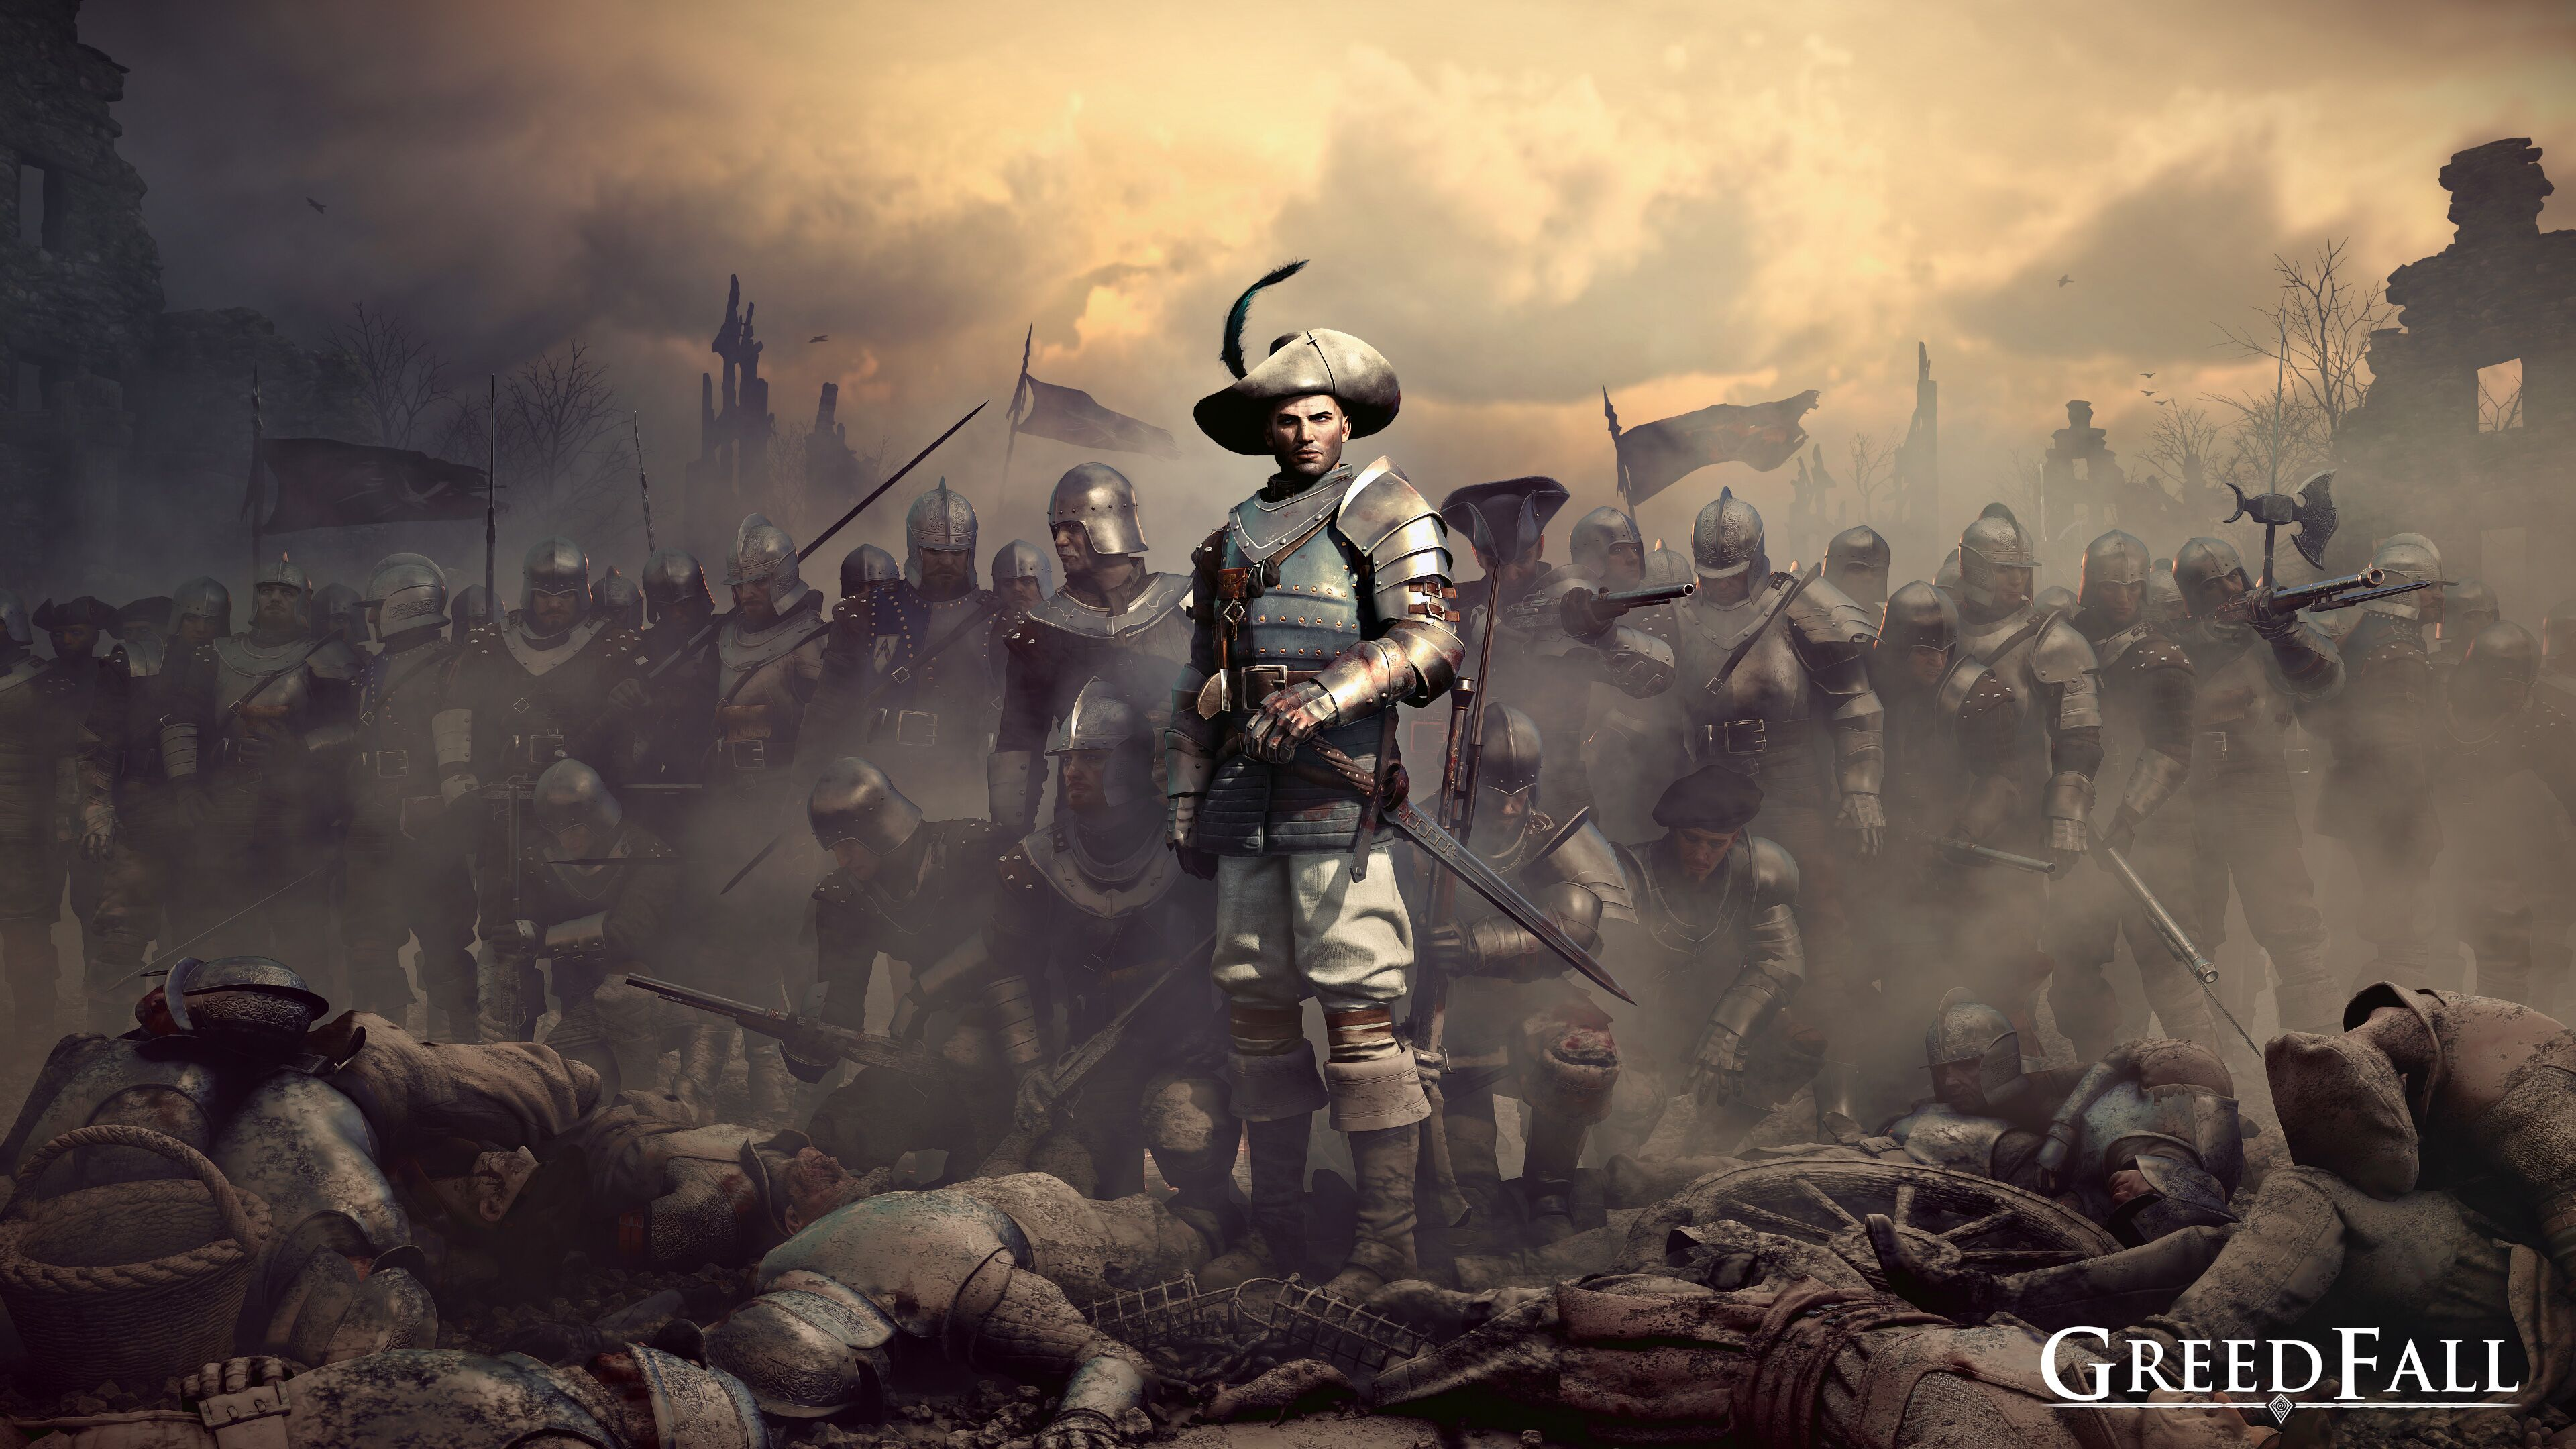 Greedfall review: Experiencing the darkest facets of colonialism